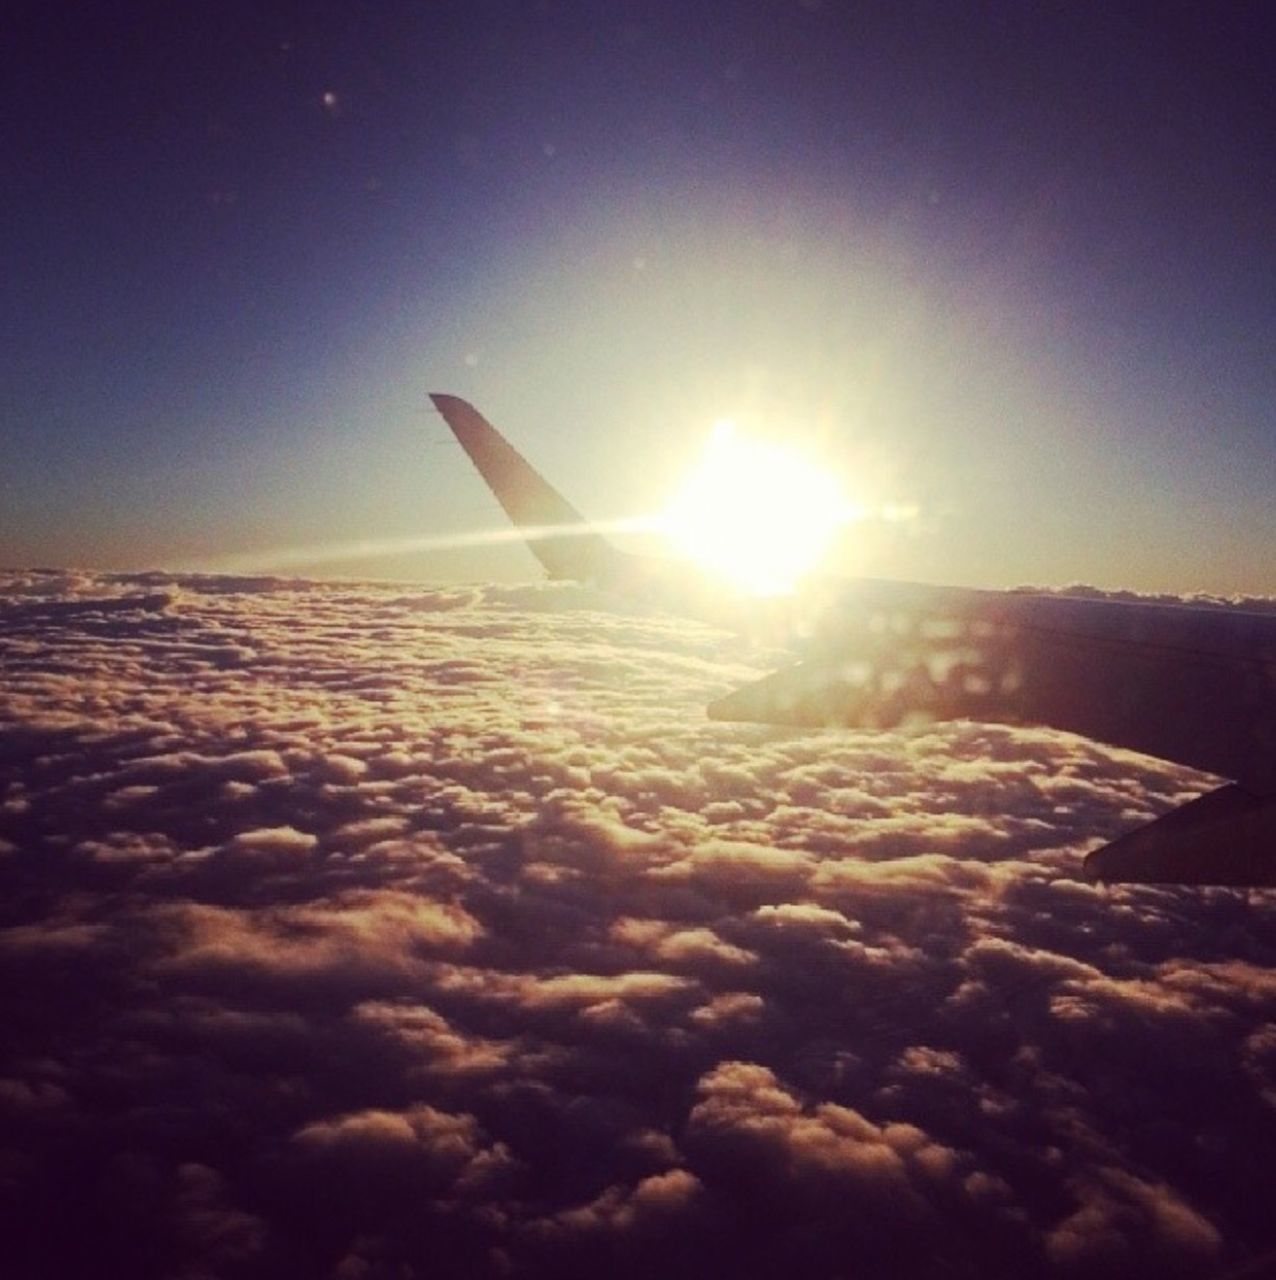 nature, sky, sun, beauty in nature, airplane, majestic, scenics, airplane wing, aerial view, sunbeam, sunset, lens flare, outdoors, transportation, journey, cloud - sky, no people, tranquility, flying, travel, sunlight, blue, tranquil scene, sky only, day, the natural world